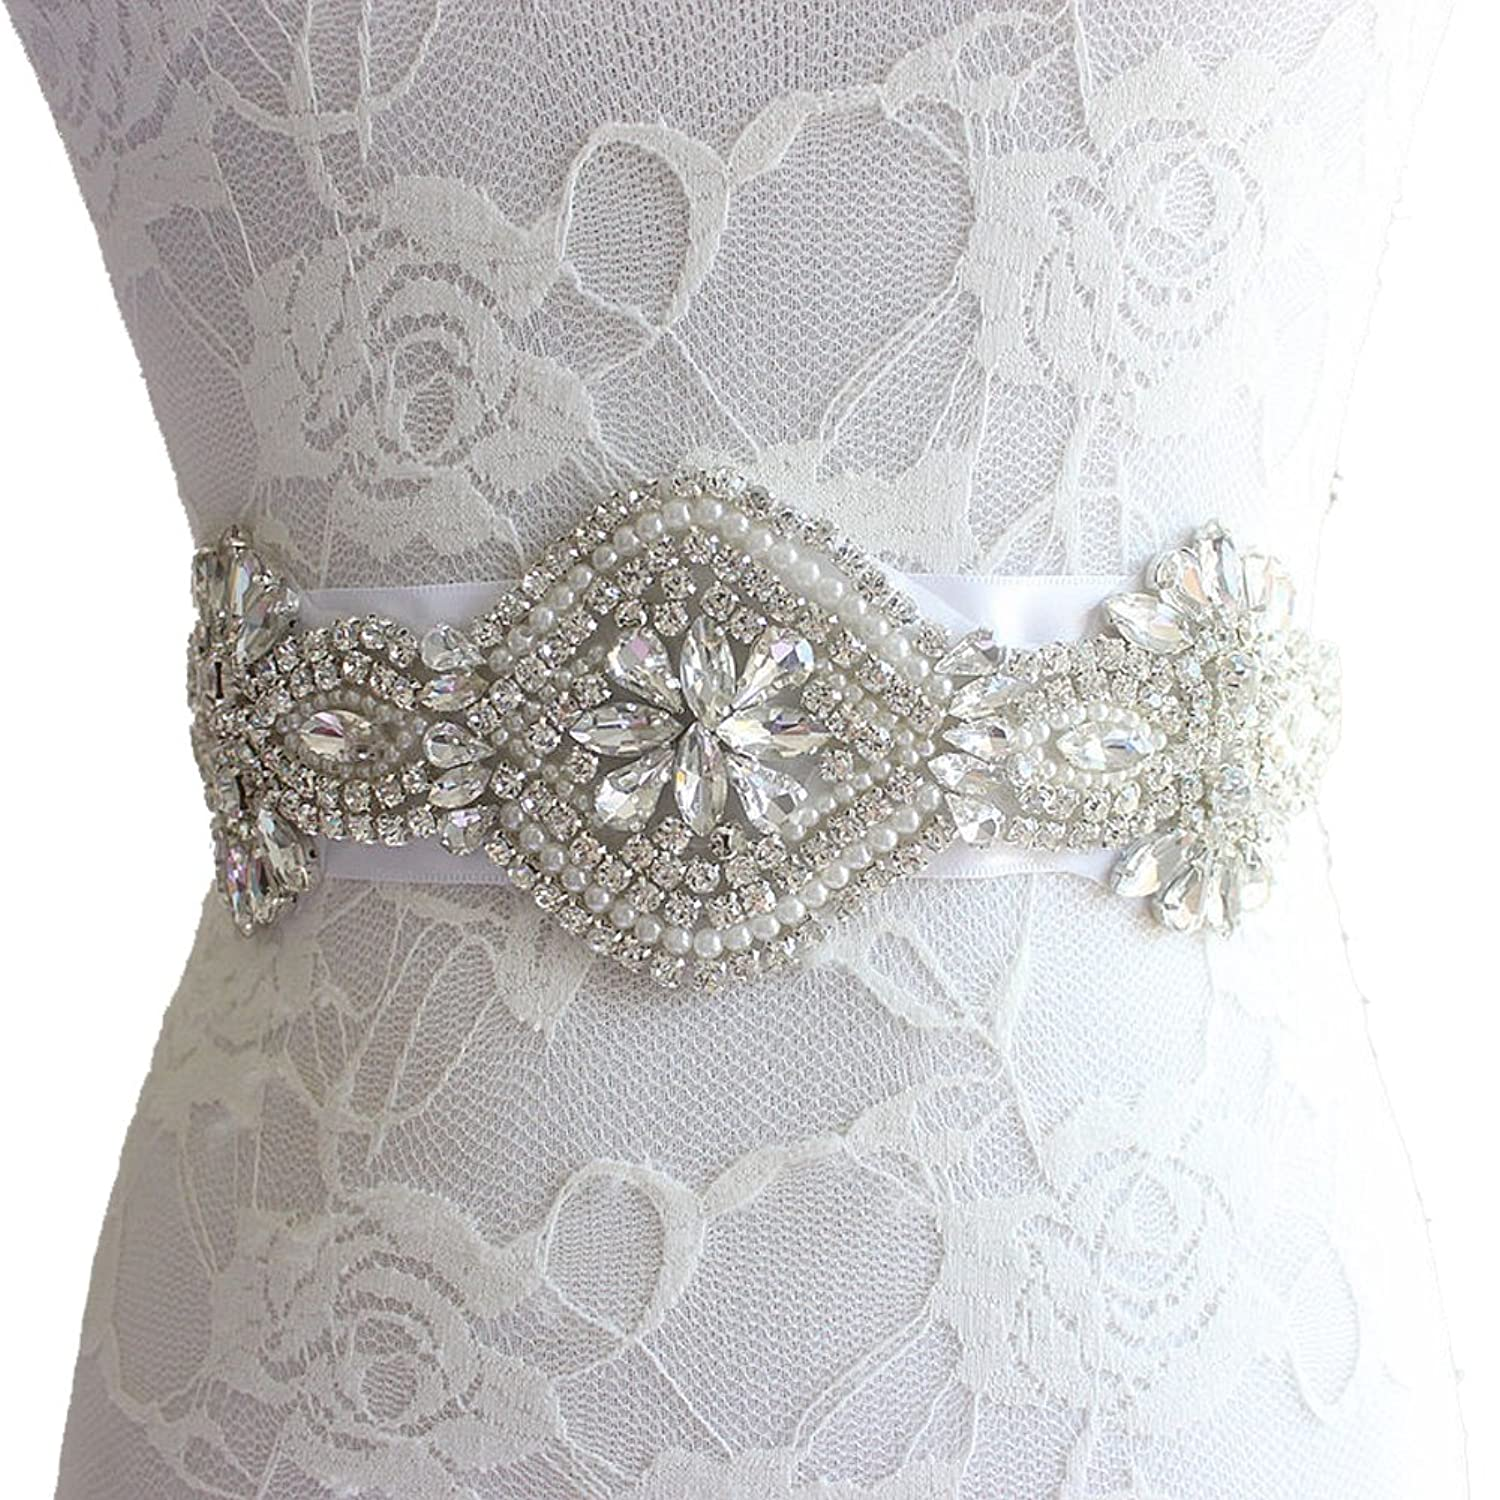 E-Clover Rhinestone Beaded Satin Bridal Wedding Sash Belt for Dress